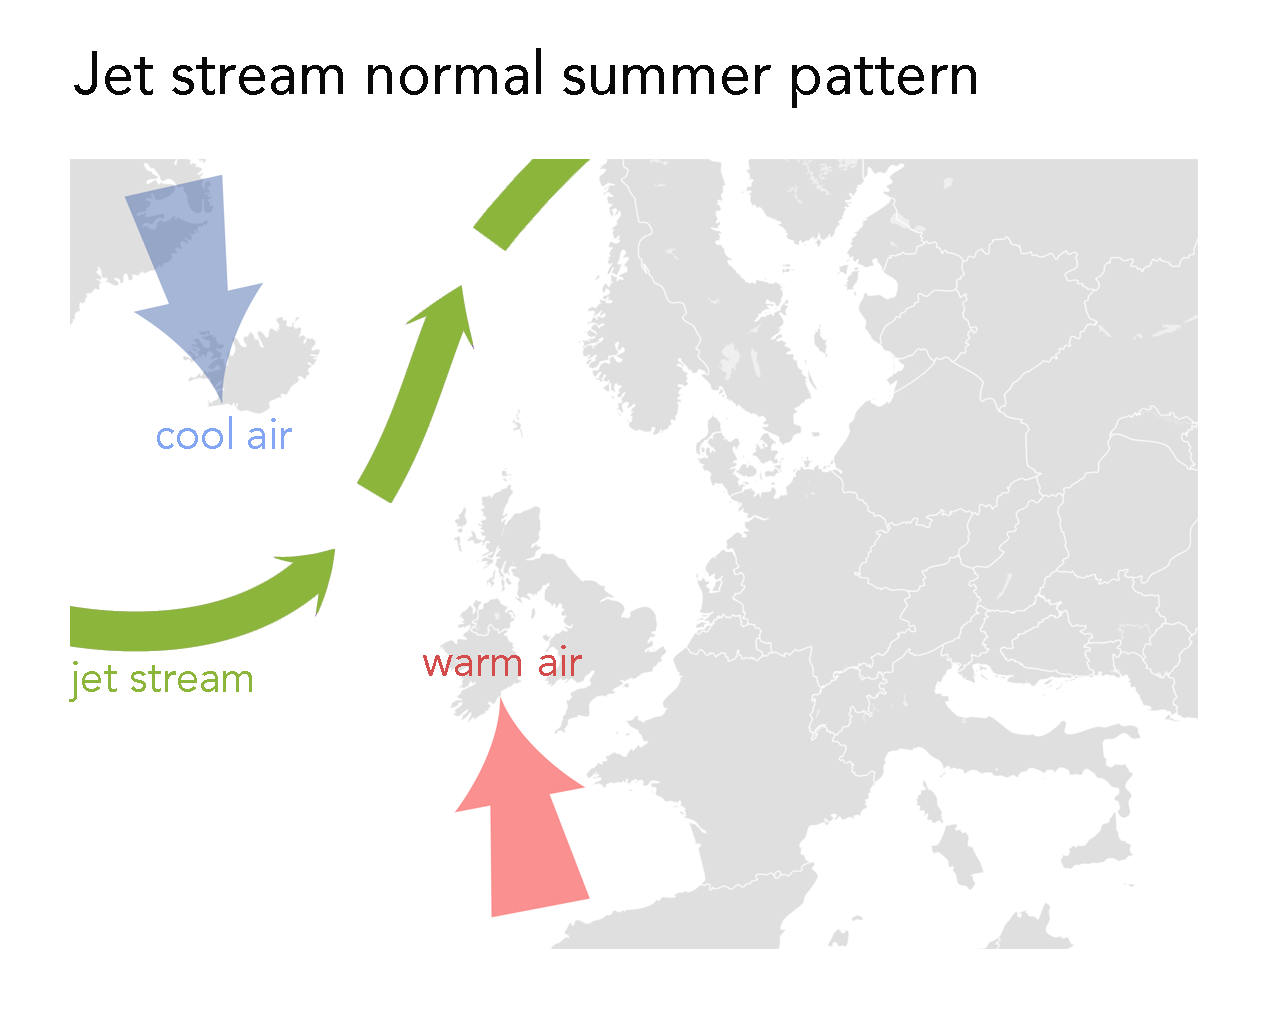 A partial map of Europe. A red arrow coming from the south towards the UK represents warm air. A blue arrow coming from the north over Iceland represents cool air. A green arrow between the the red and the blue represents the jet stream